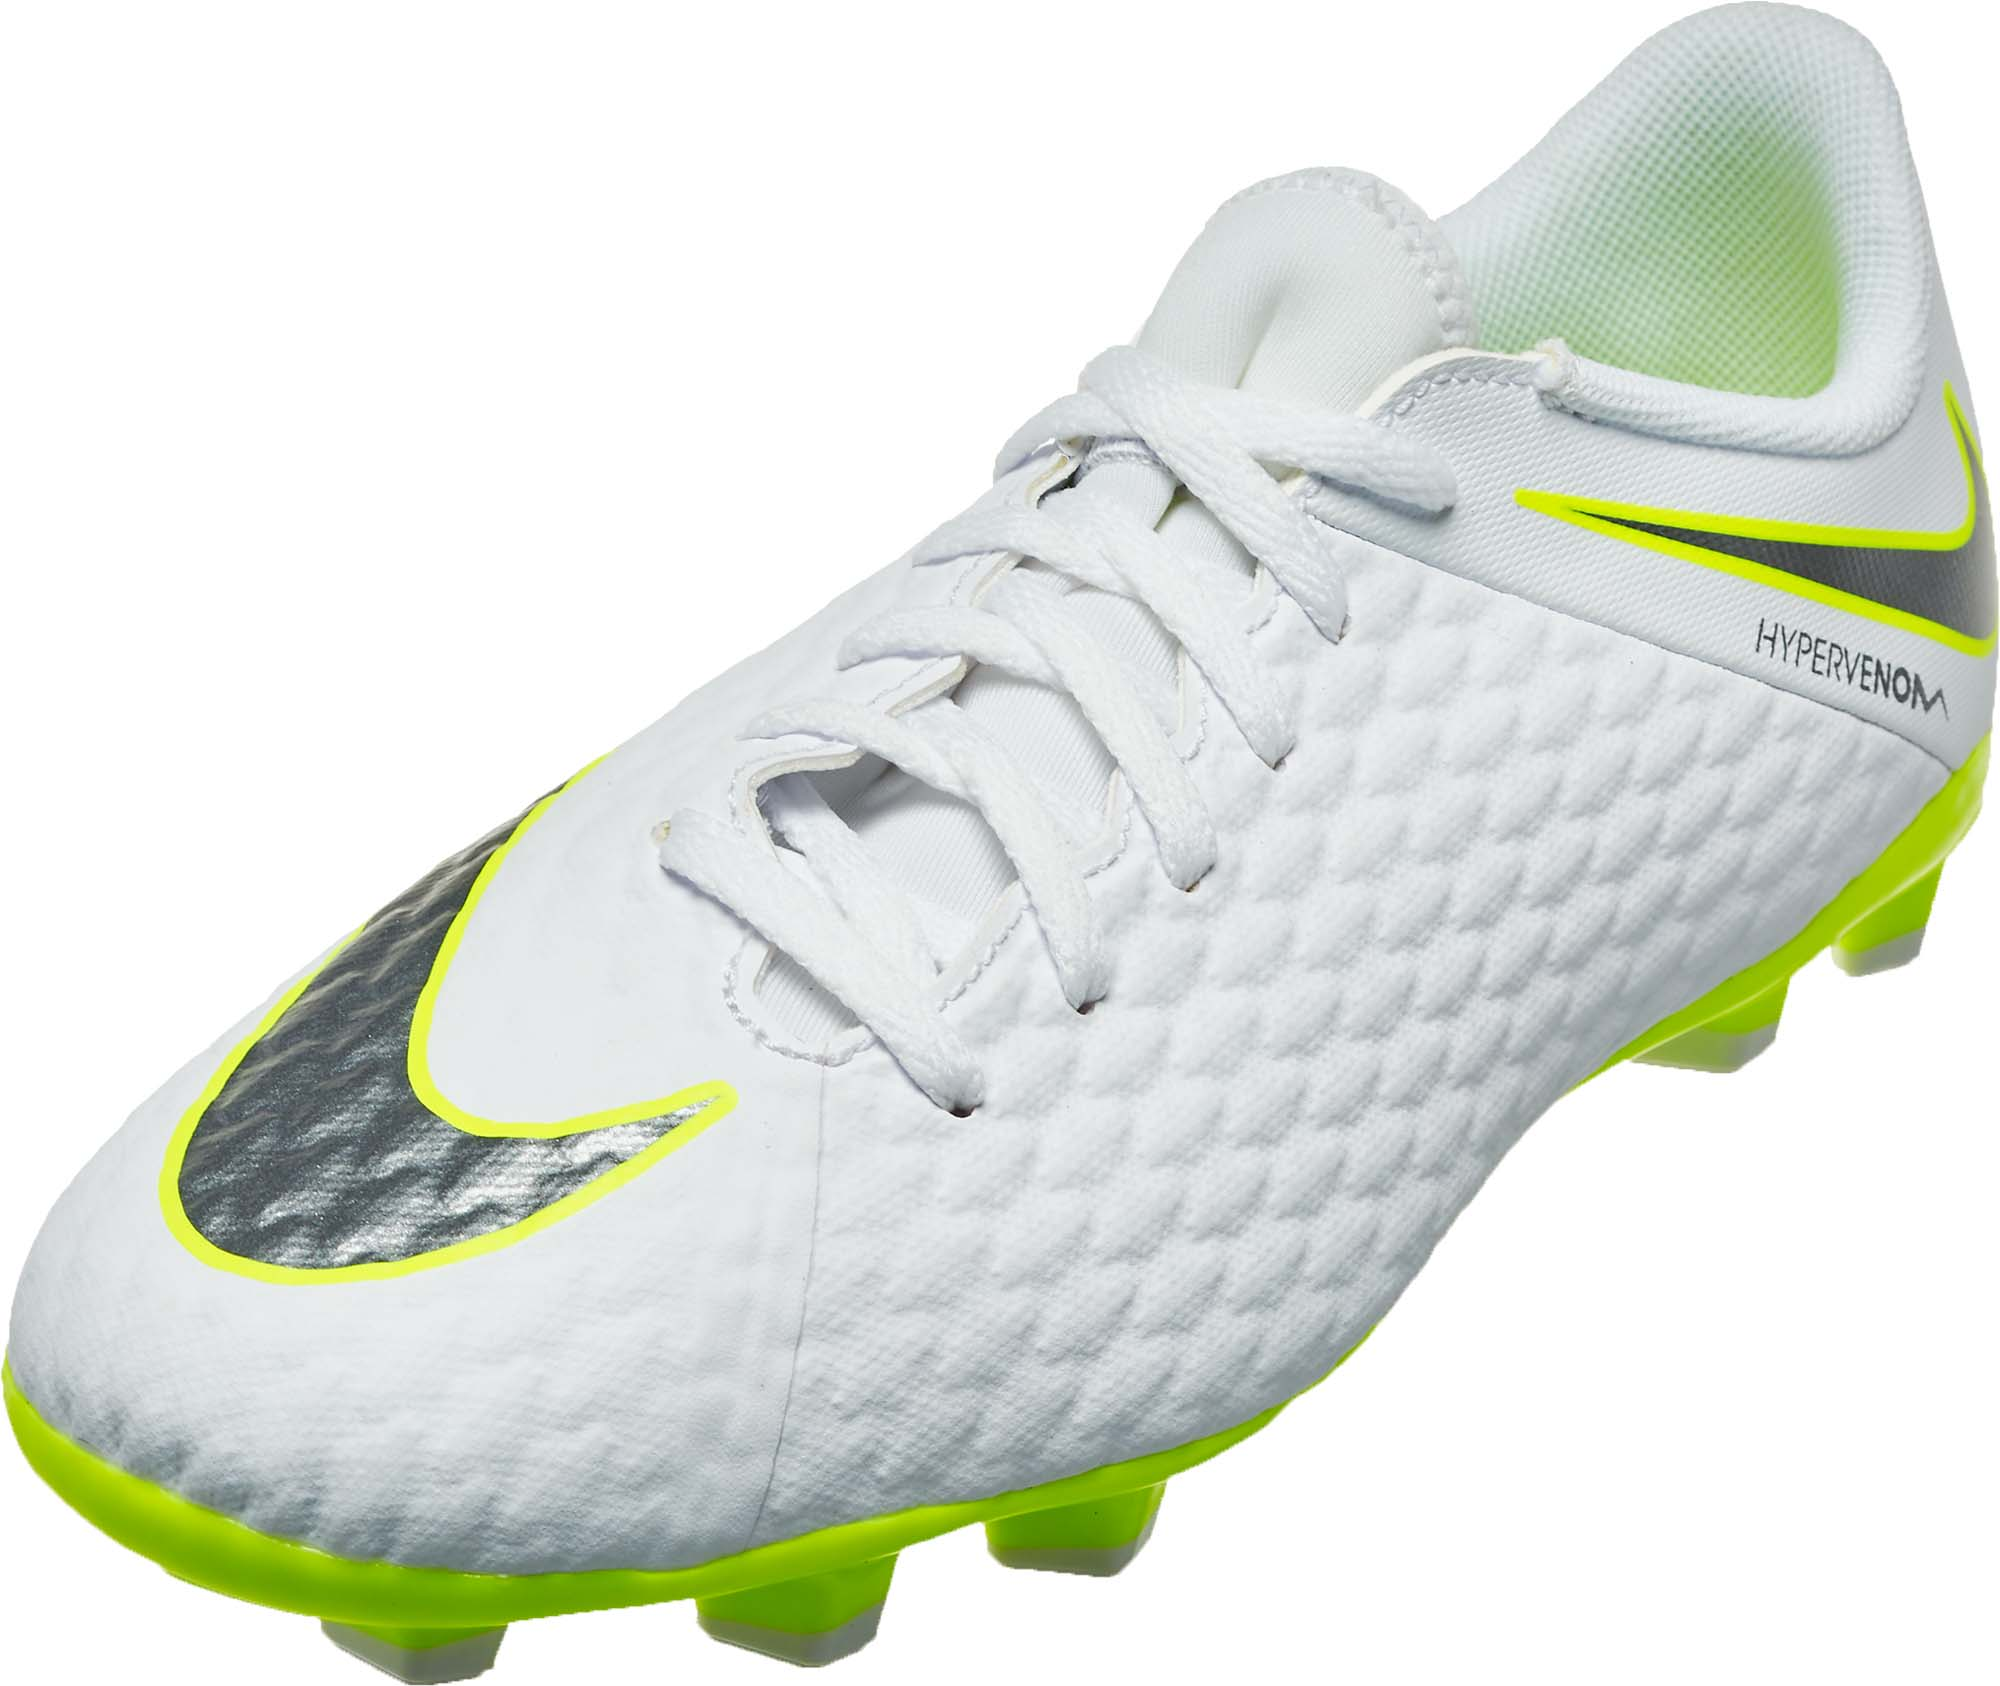 reputable site 3abac d834c Nike Hypervenom Phantom 3 Academy FG - Youth - White/Metallic Cool Grey/Volt